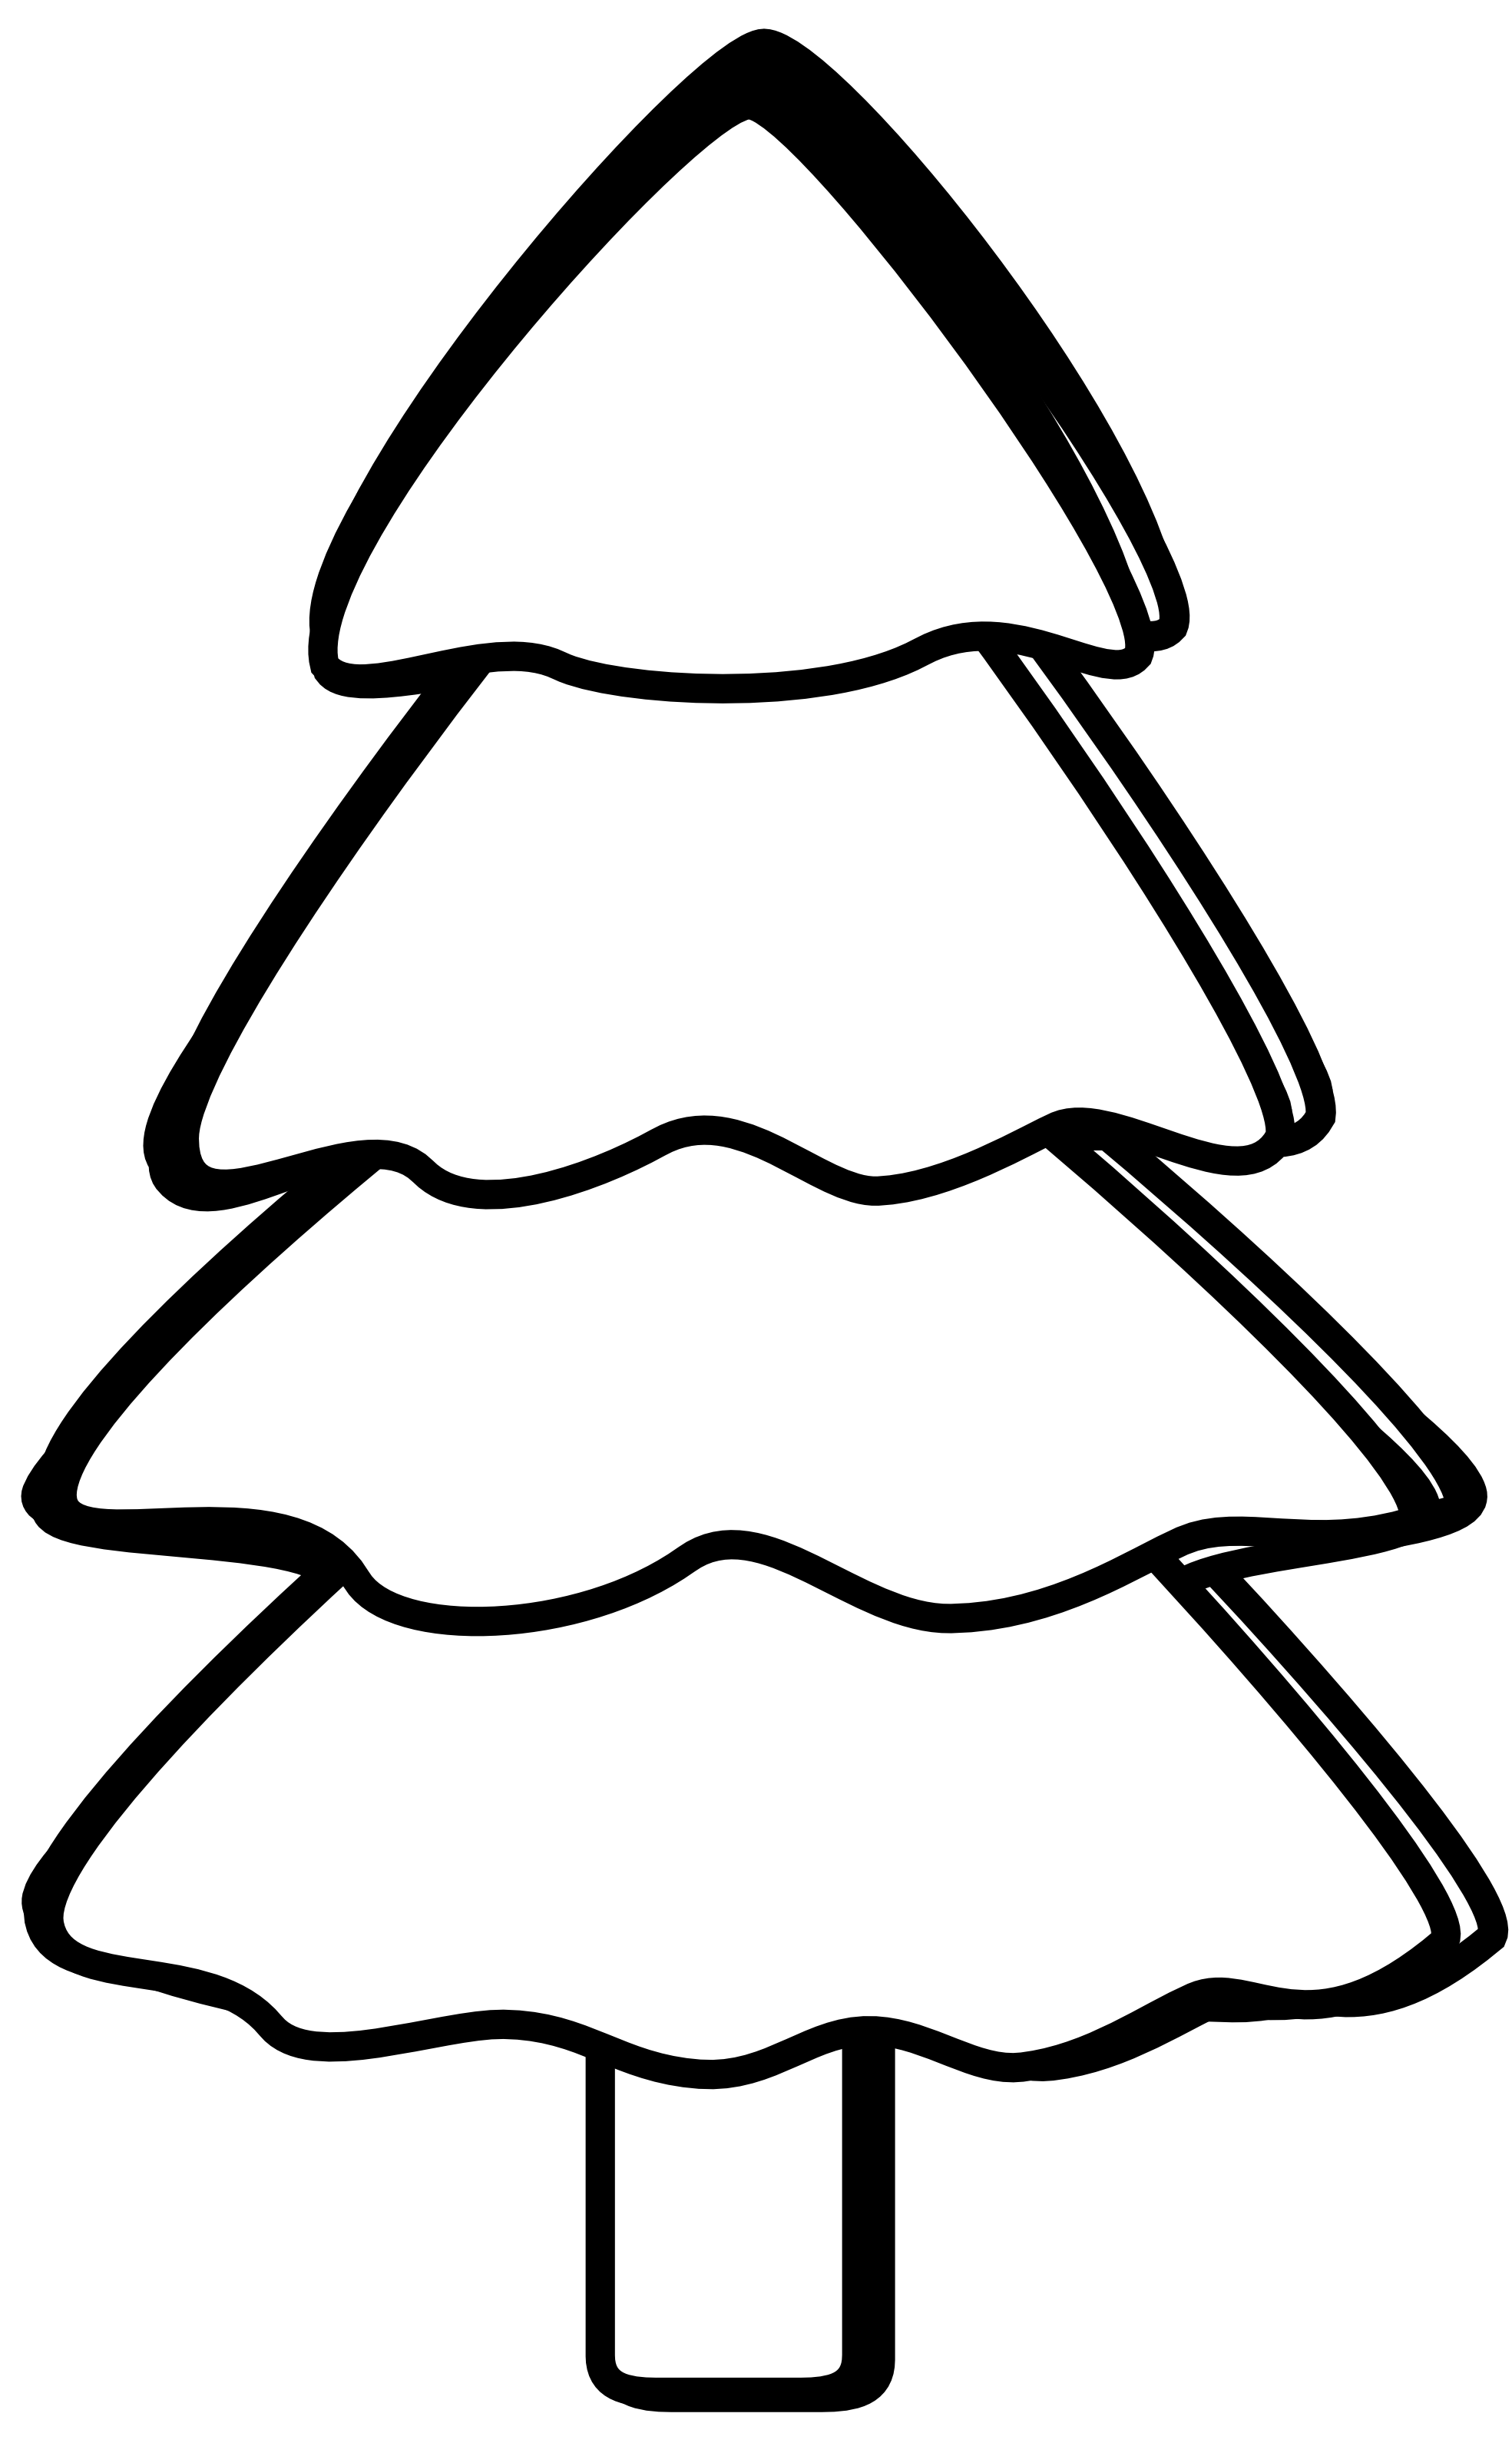 Tree black and white clipart jpg freeuse stock Simple tree clipart black and white jpg freeuse stock